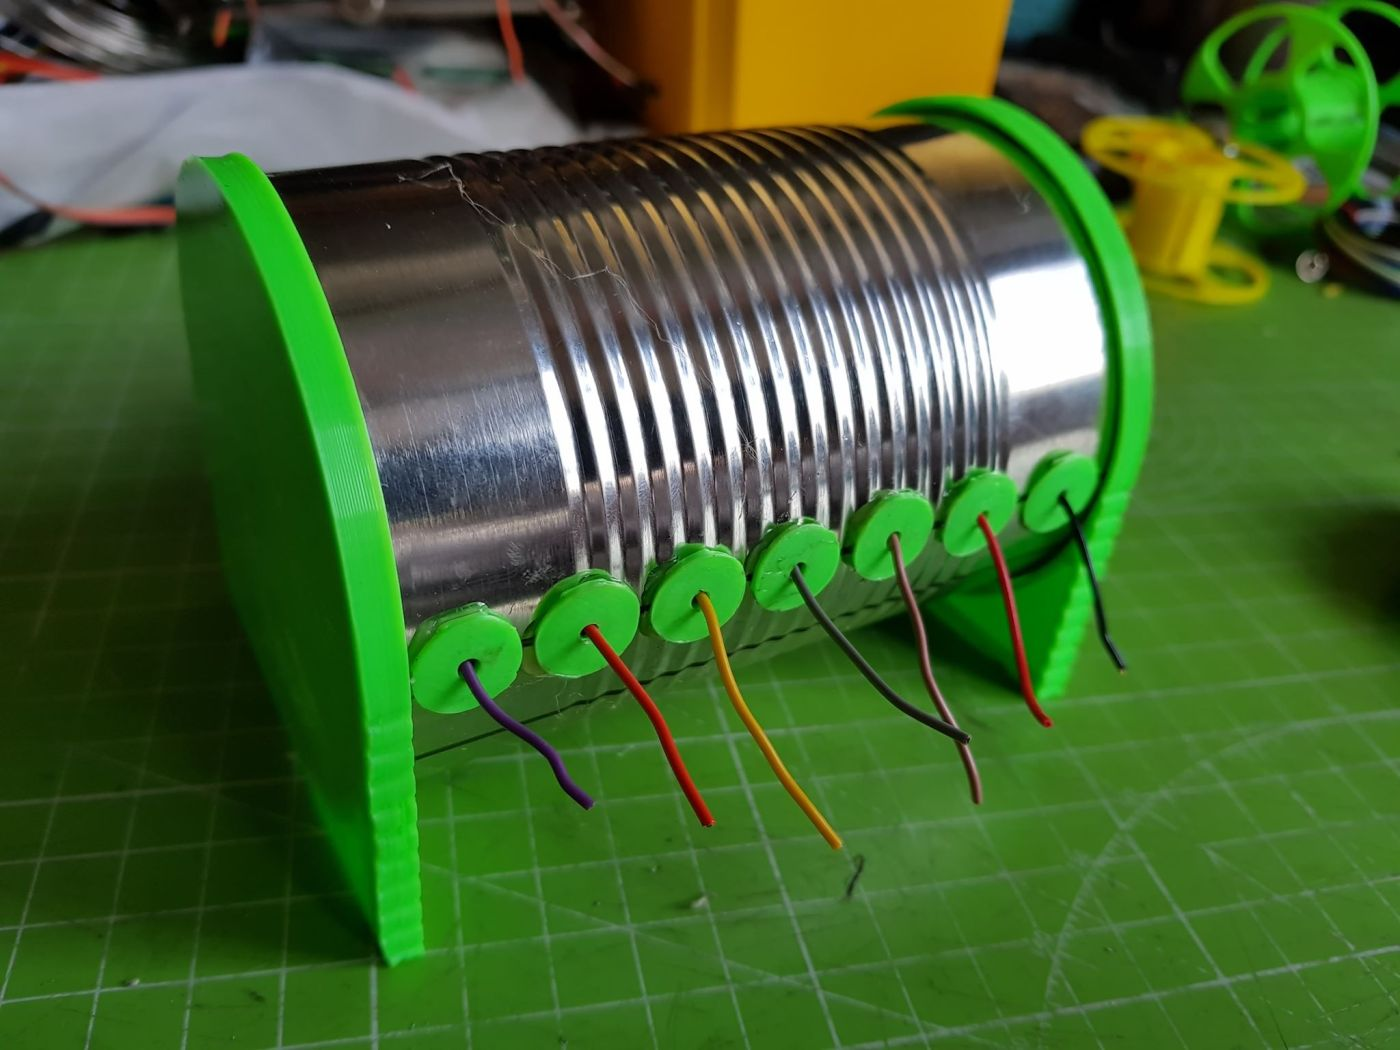 Tips Of The Week Soaking Out Rust Picking An Arduino Wire Yaflc Yet Another Flickering Led Candle Using Tiny45 Microcontroller Wrangling Reorganize And Be Happy Iot Expert